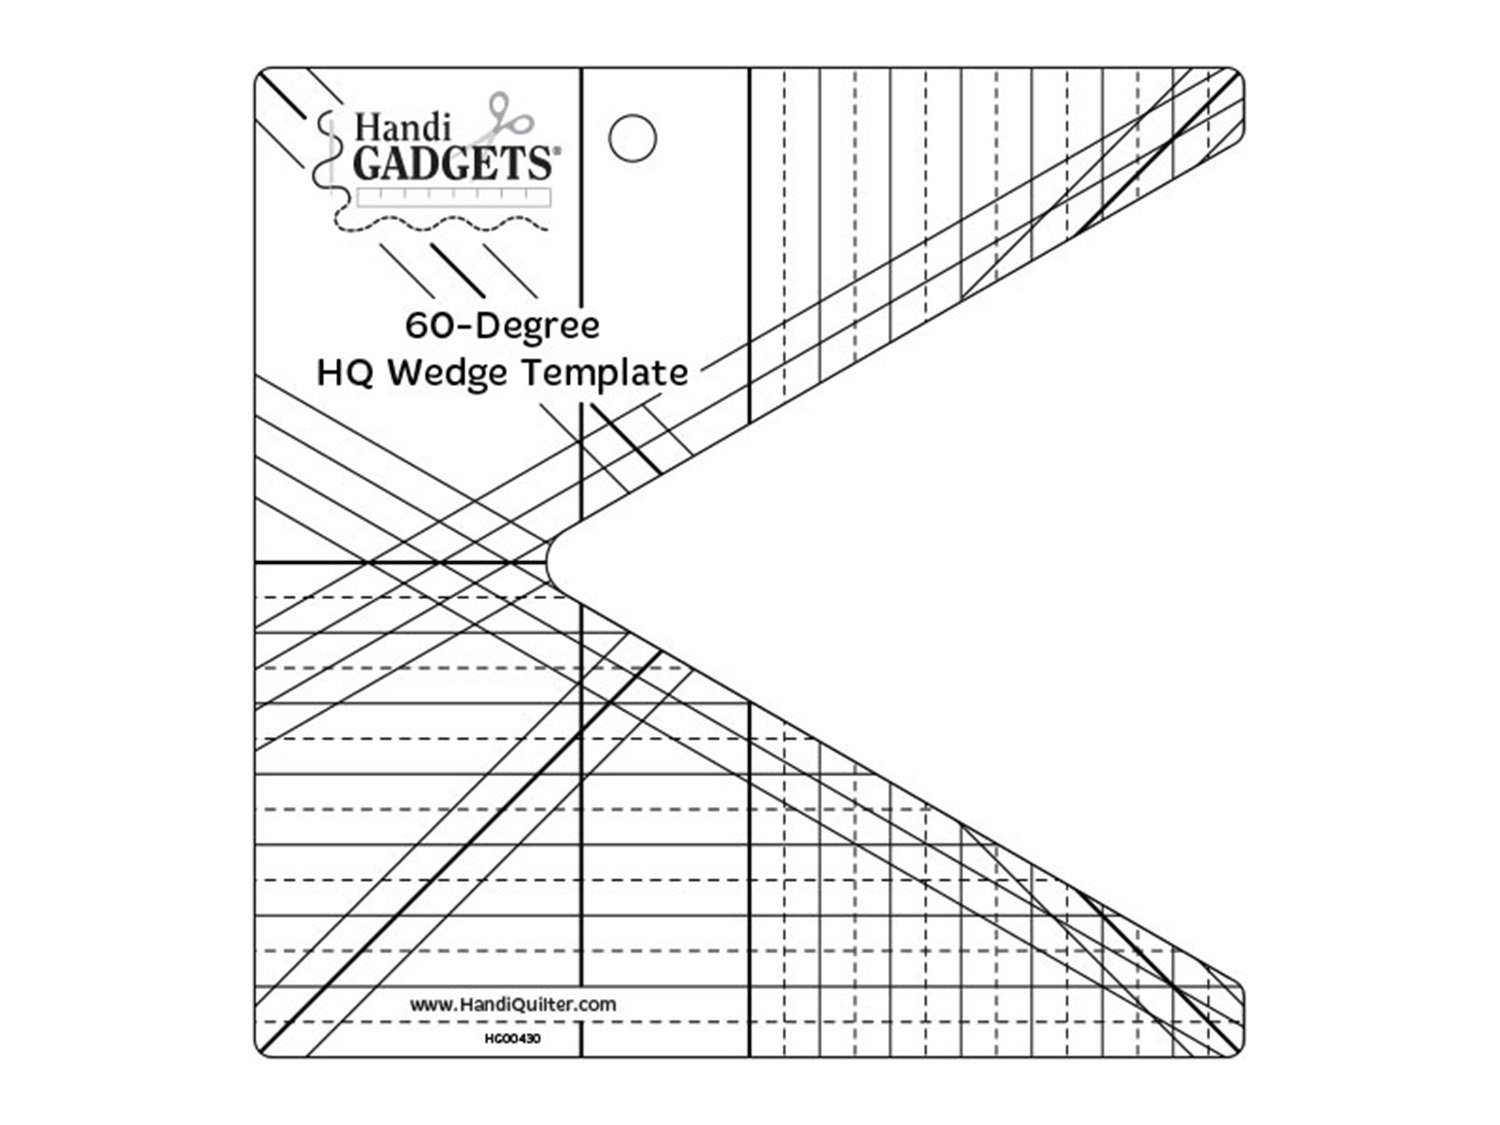 60-Degree HQ Wedge Template